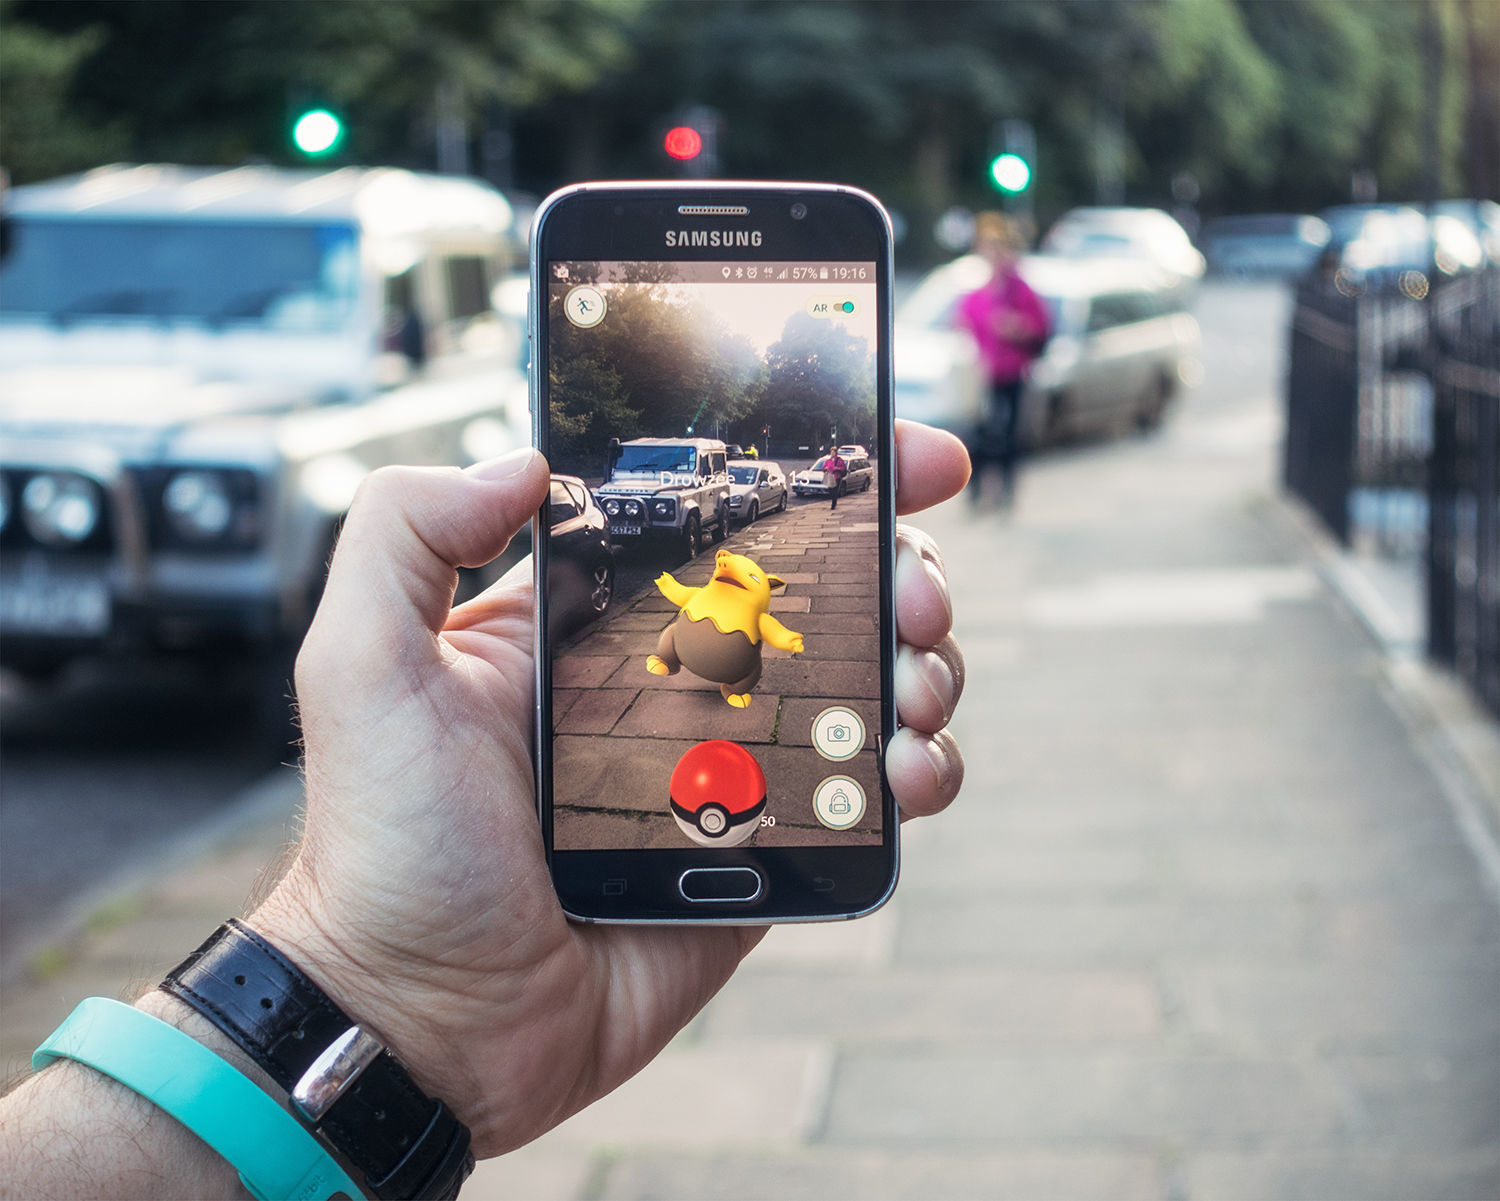 You'll soon be able to use Pokémon Go's tech to make your own AR games and experiences